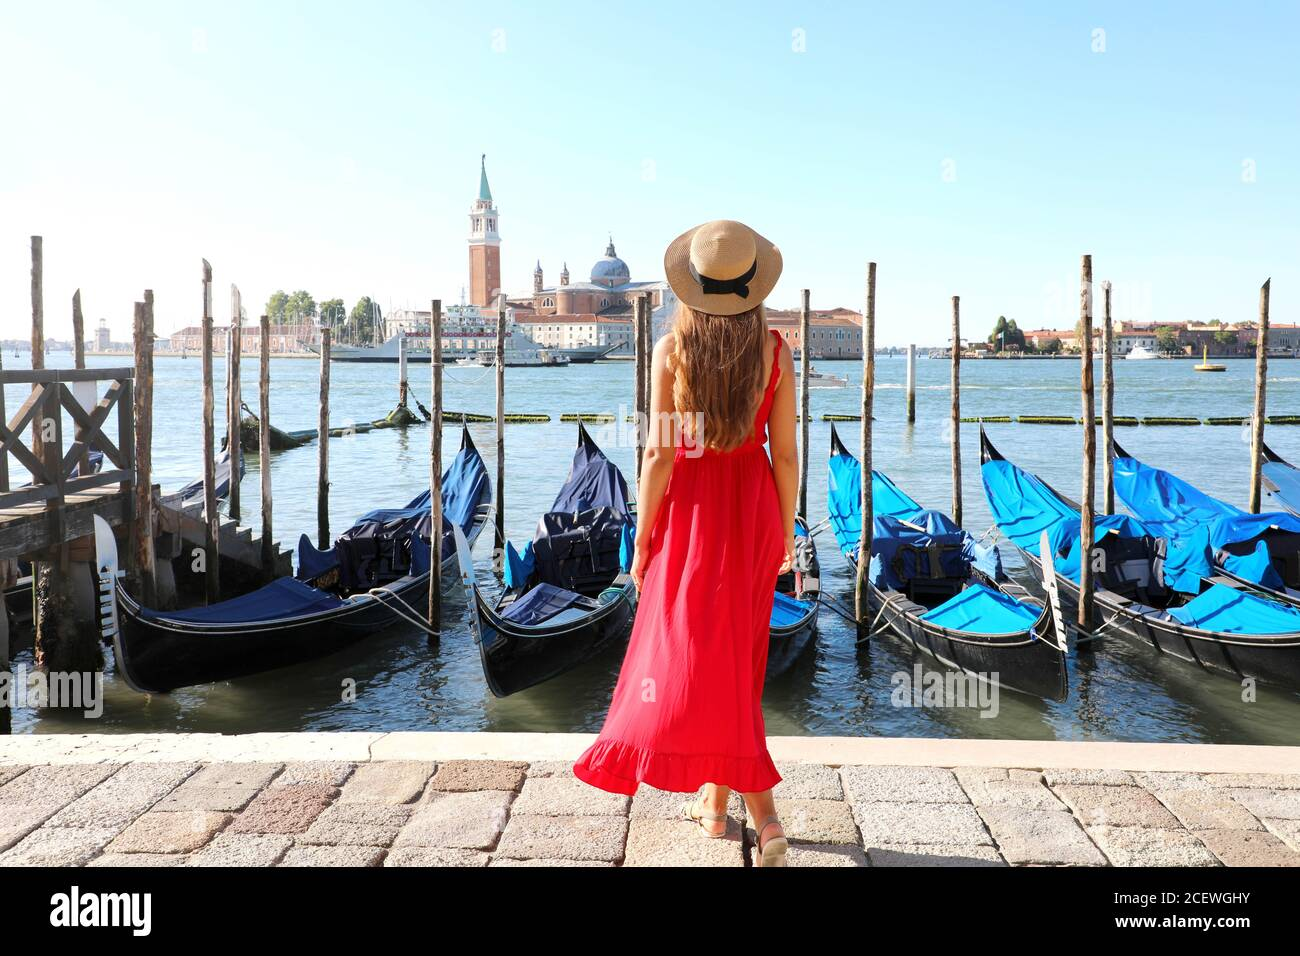 Holidays in Venice. Back view of beautiful girl in red dress enjoying view of Venice Lagoon with the island of San Giorgio Maggiore and gondolas moore Stock Photo